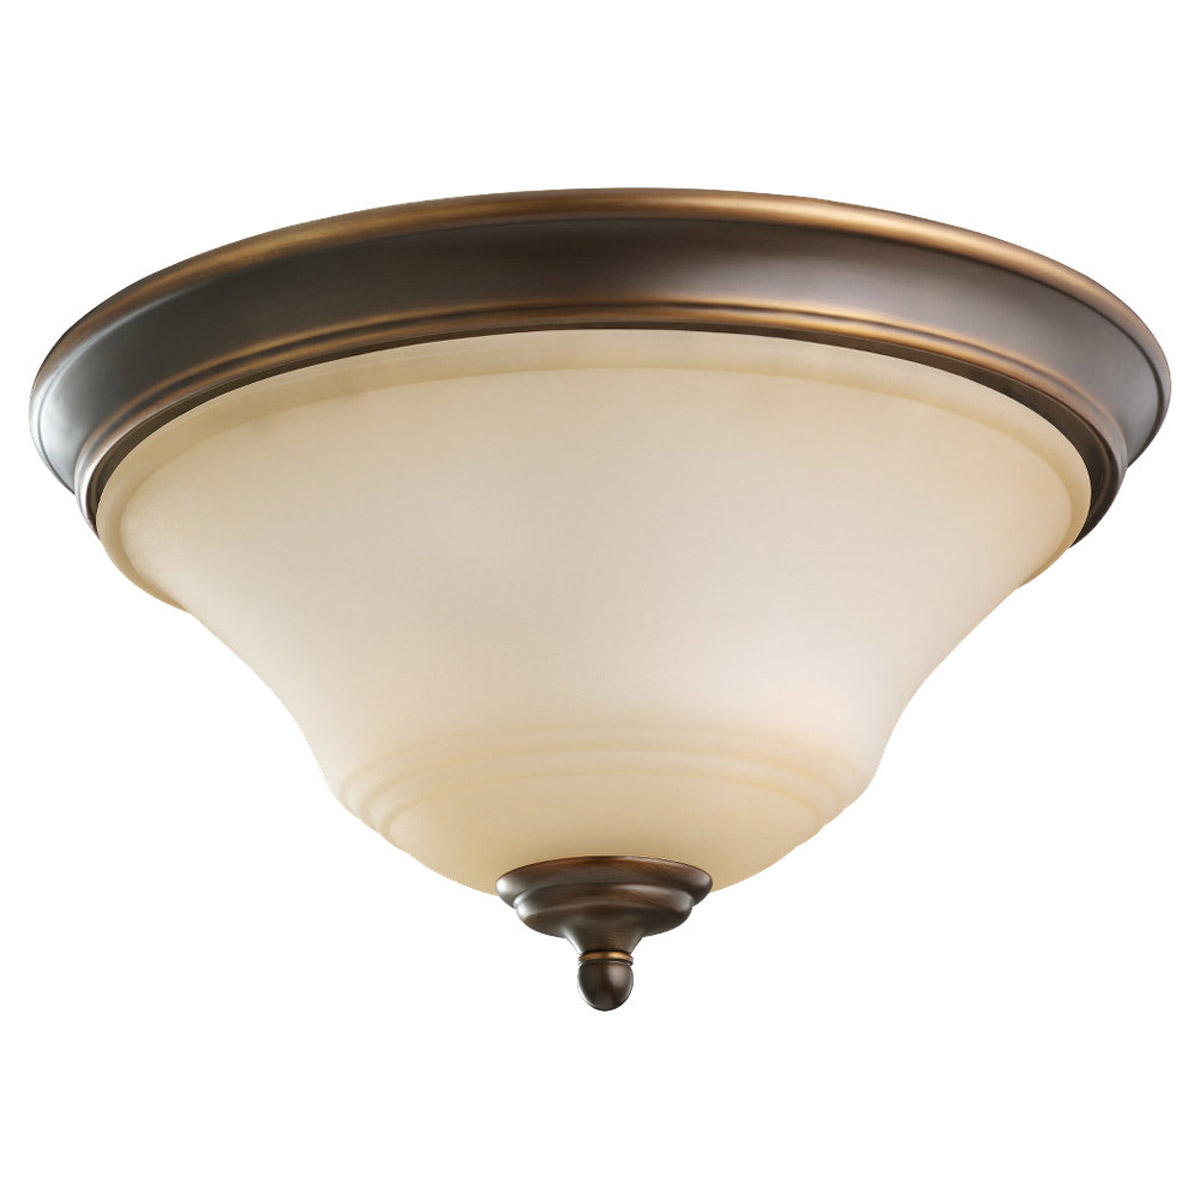 Sea Gull Lighting Parkview 2 Light Flush Mount in Russet Bronze 75381-829